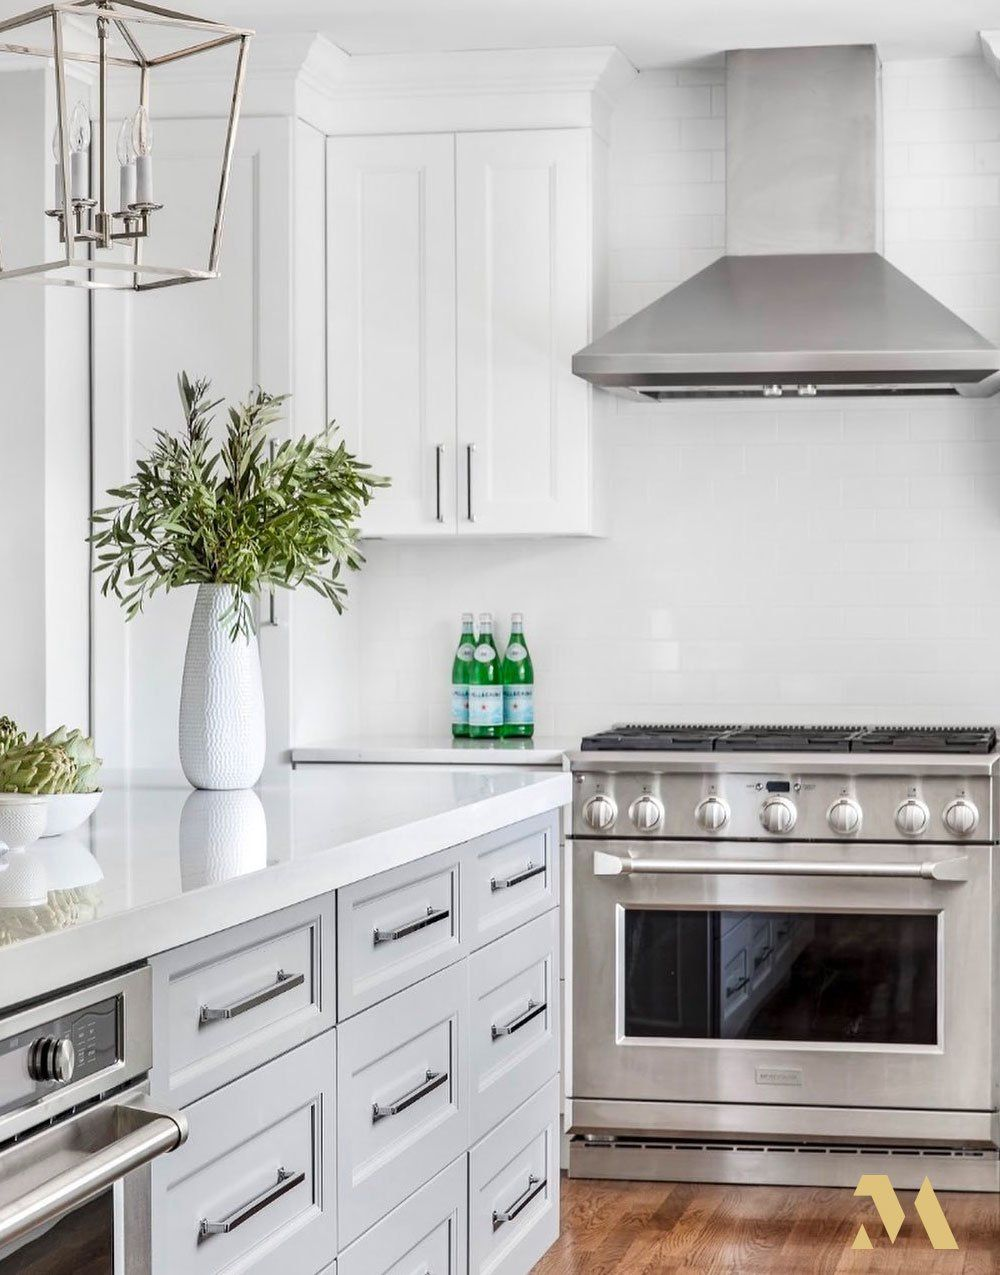 This Bright And Modern Kitchen With Monogram Appliances Designed By J Bandel Interiors Is Just Perfect In 2020 Professional Kitchen Appliances Kitchen Modern Kitchen